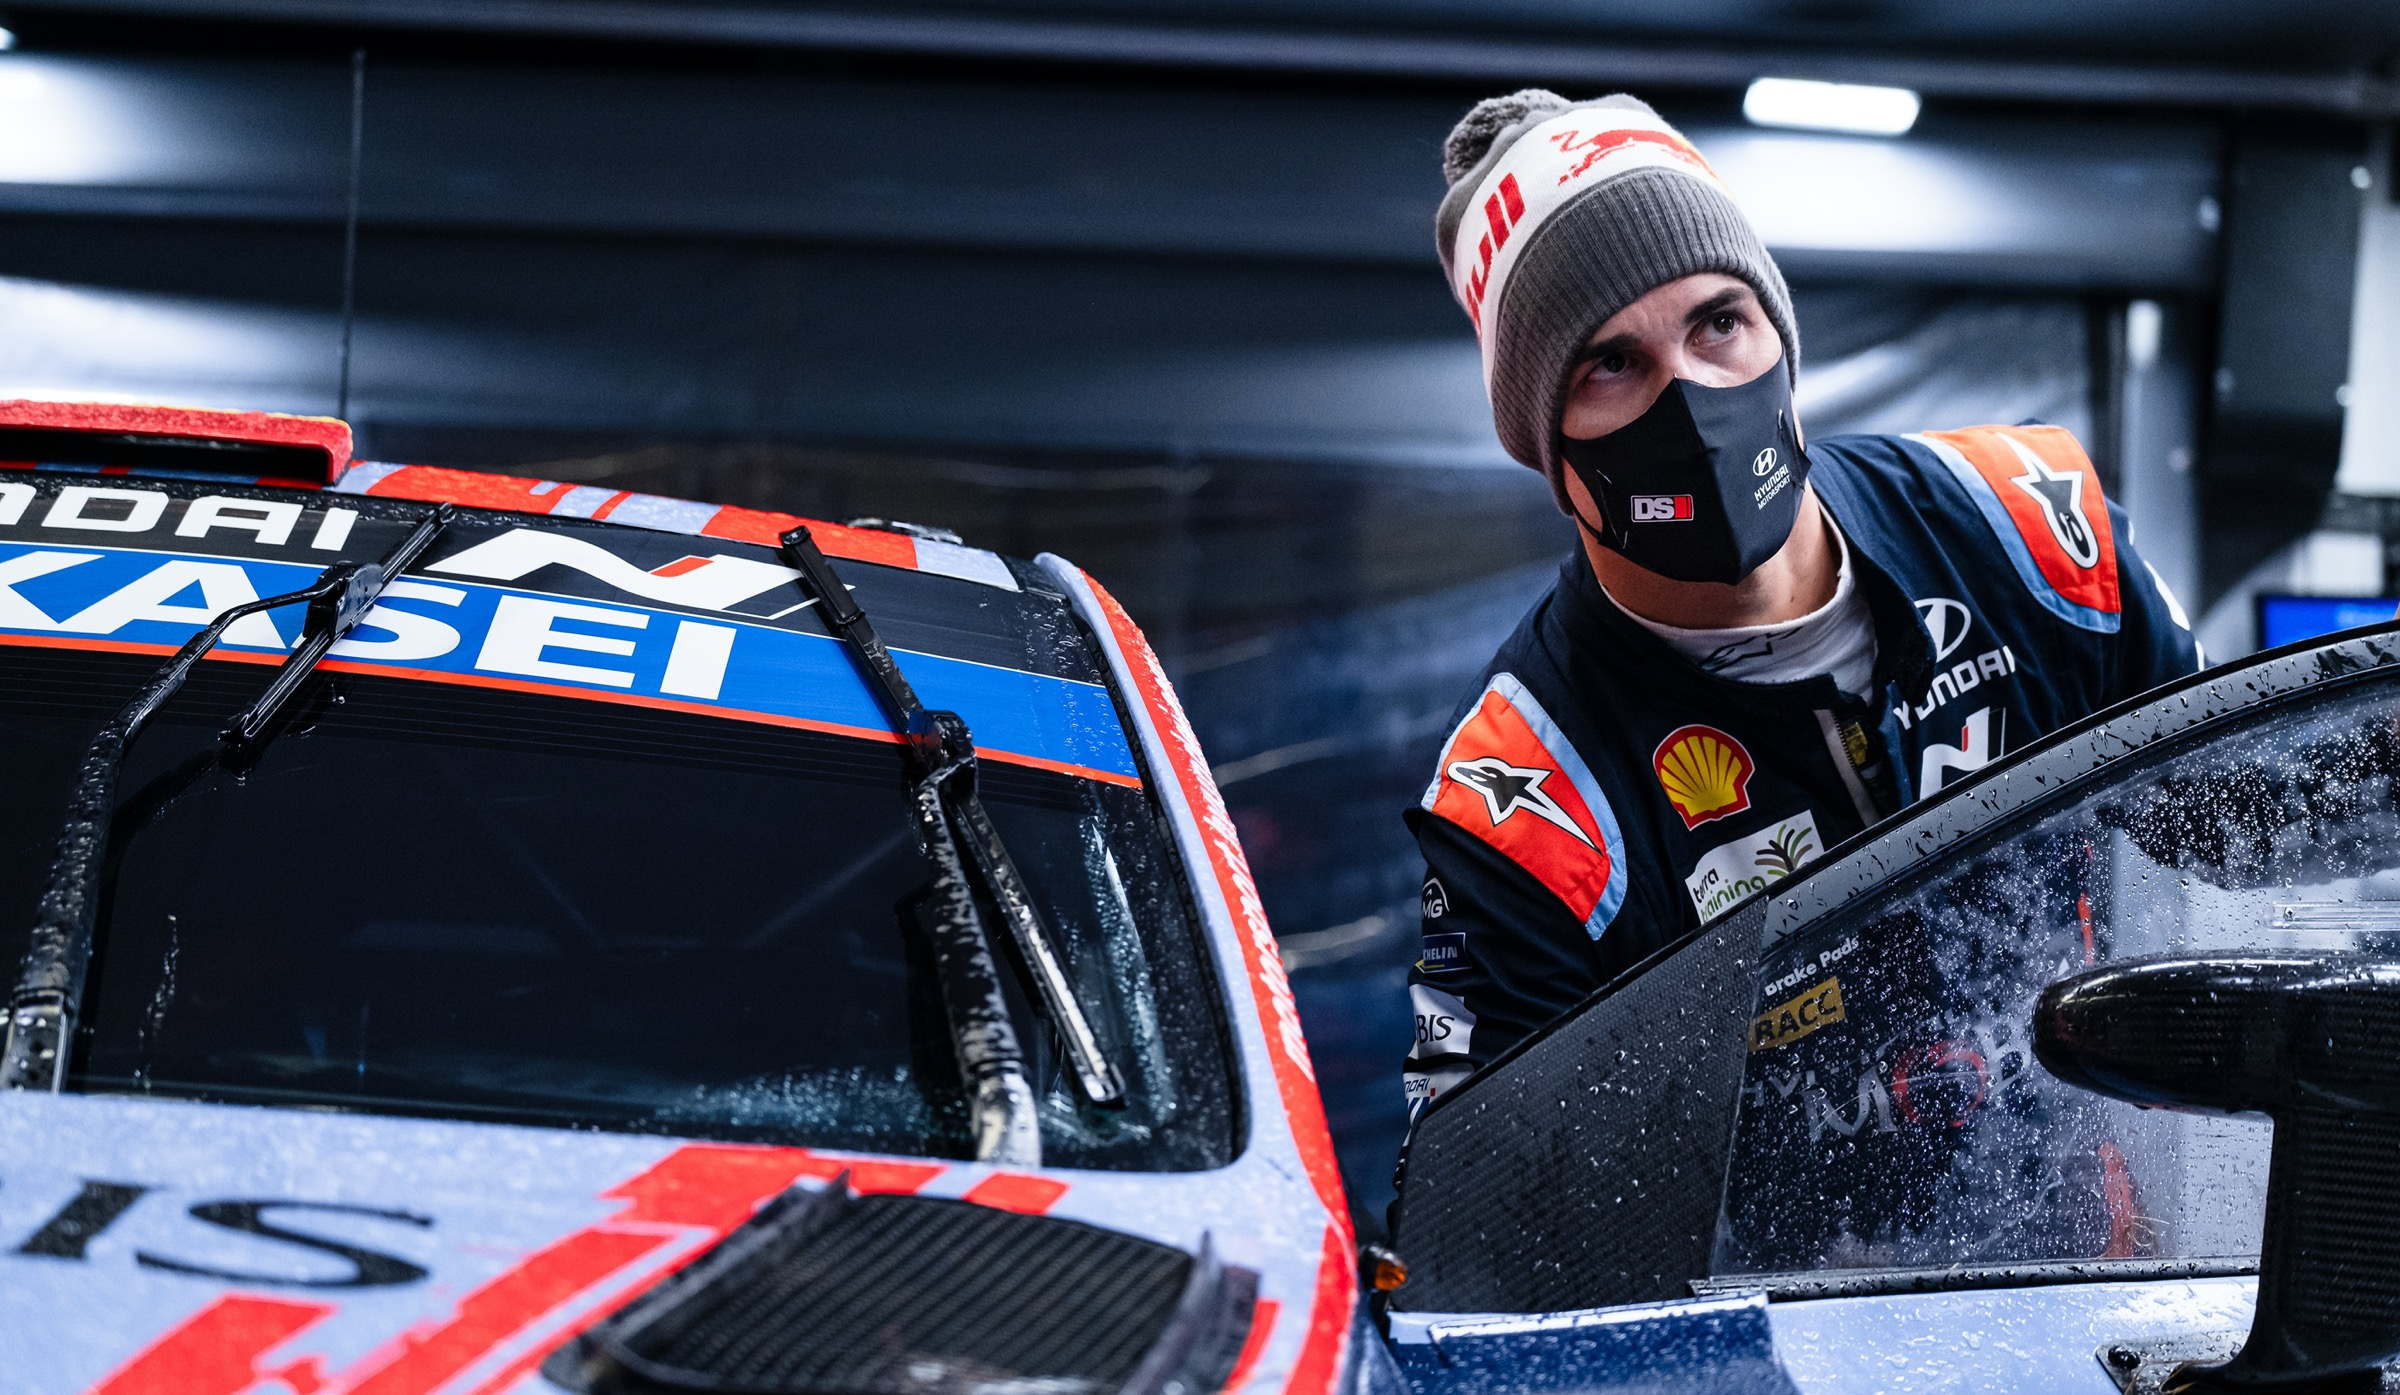 [Addition]WRC Monza: 10 seconds penalty for 1st place Soldo and 2nd place Rappi, 1 second difference for each of the top 3 cars – RALLYPLUS.NET Rally Plus